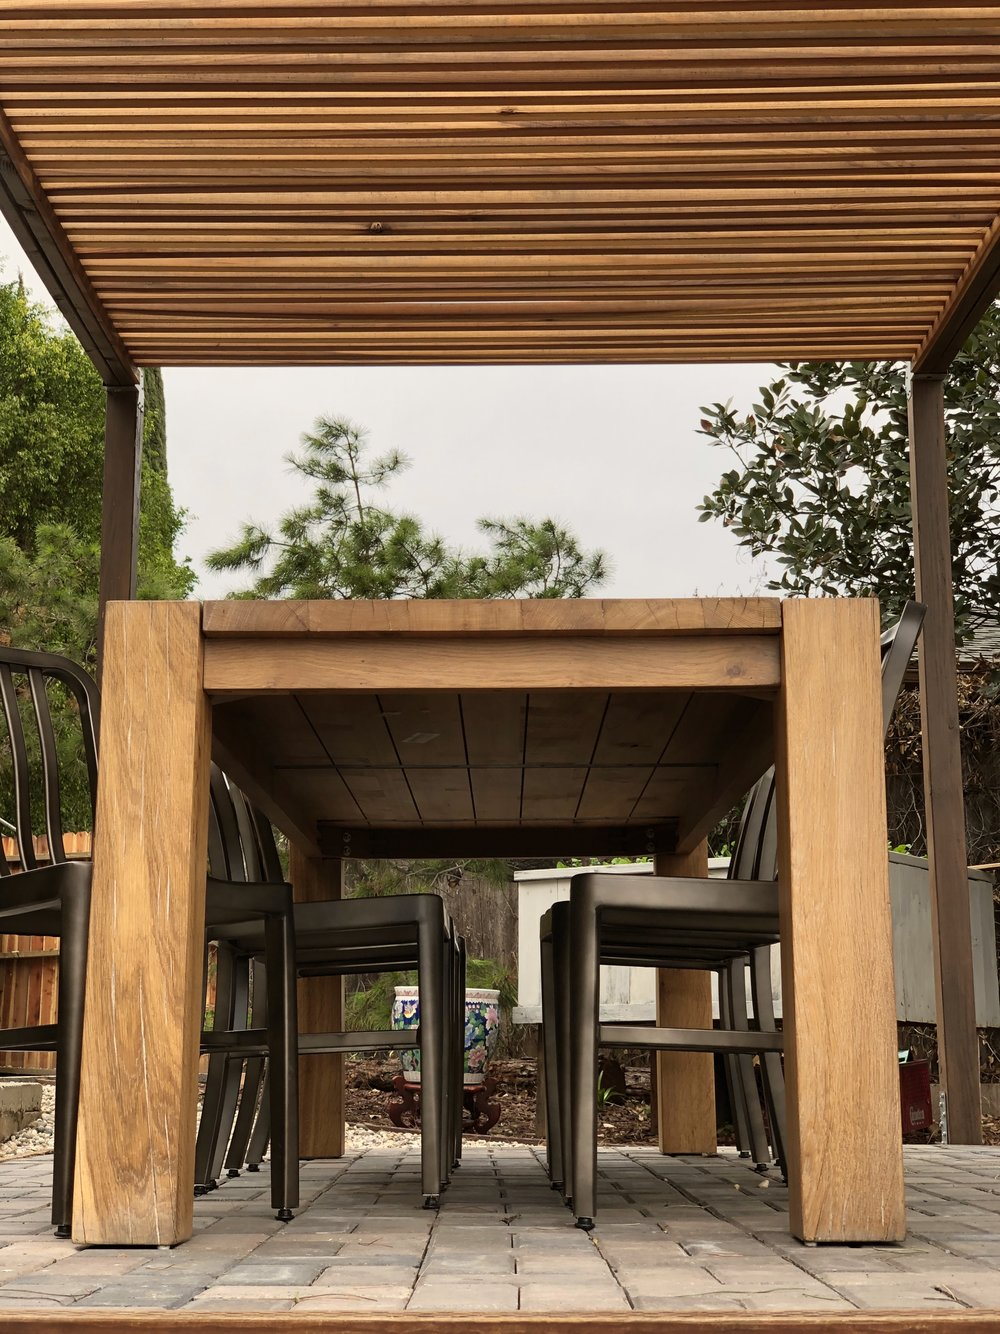 We created the pergola roof from durable redwood slats that let in just enough light.